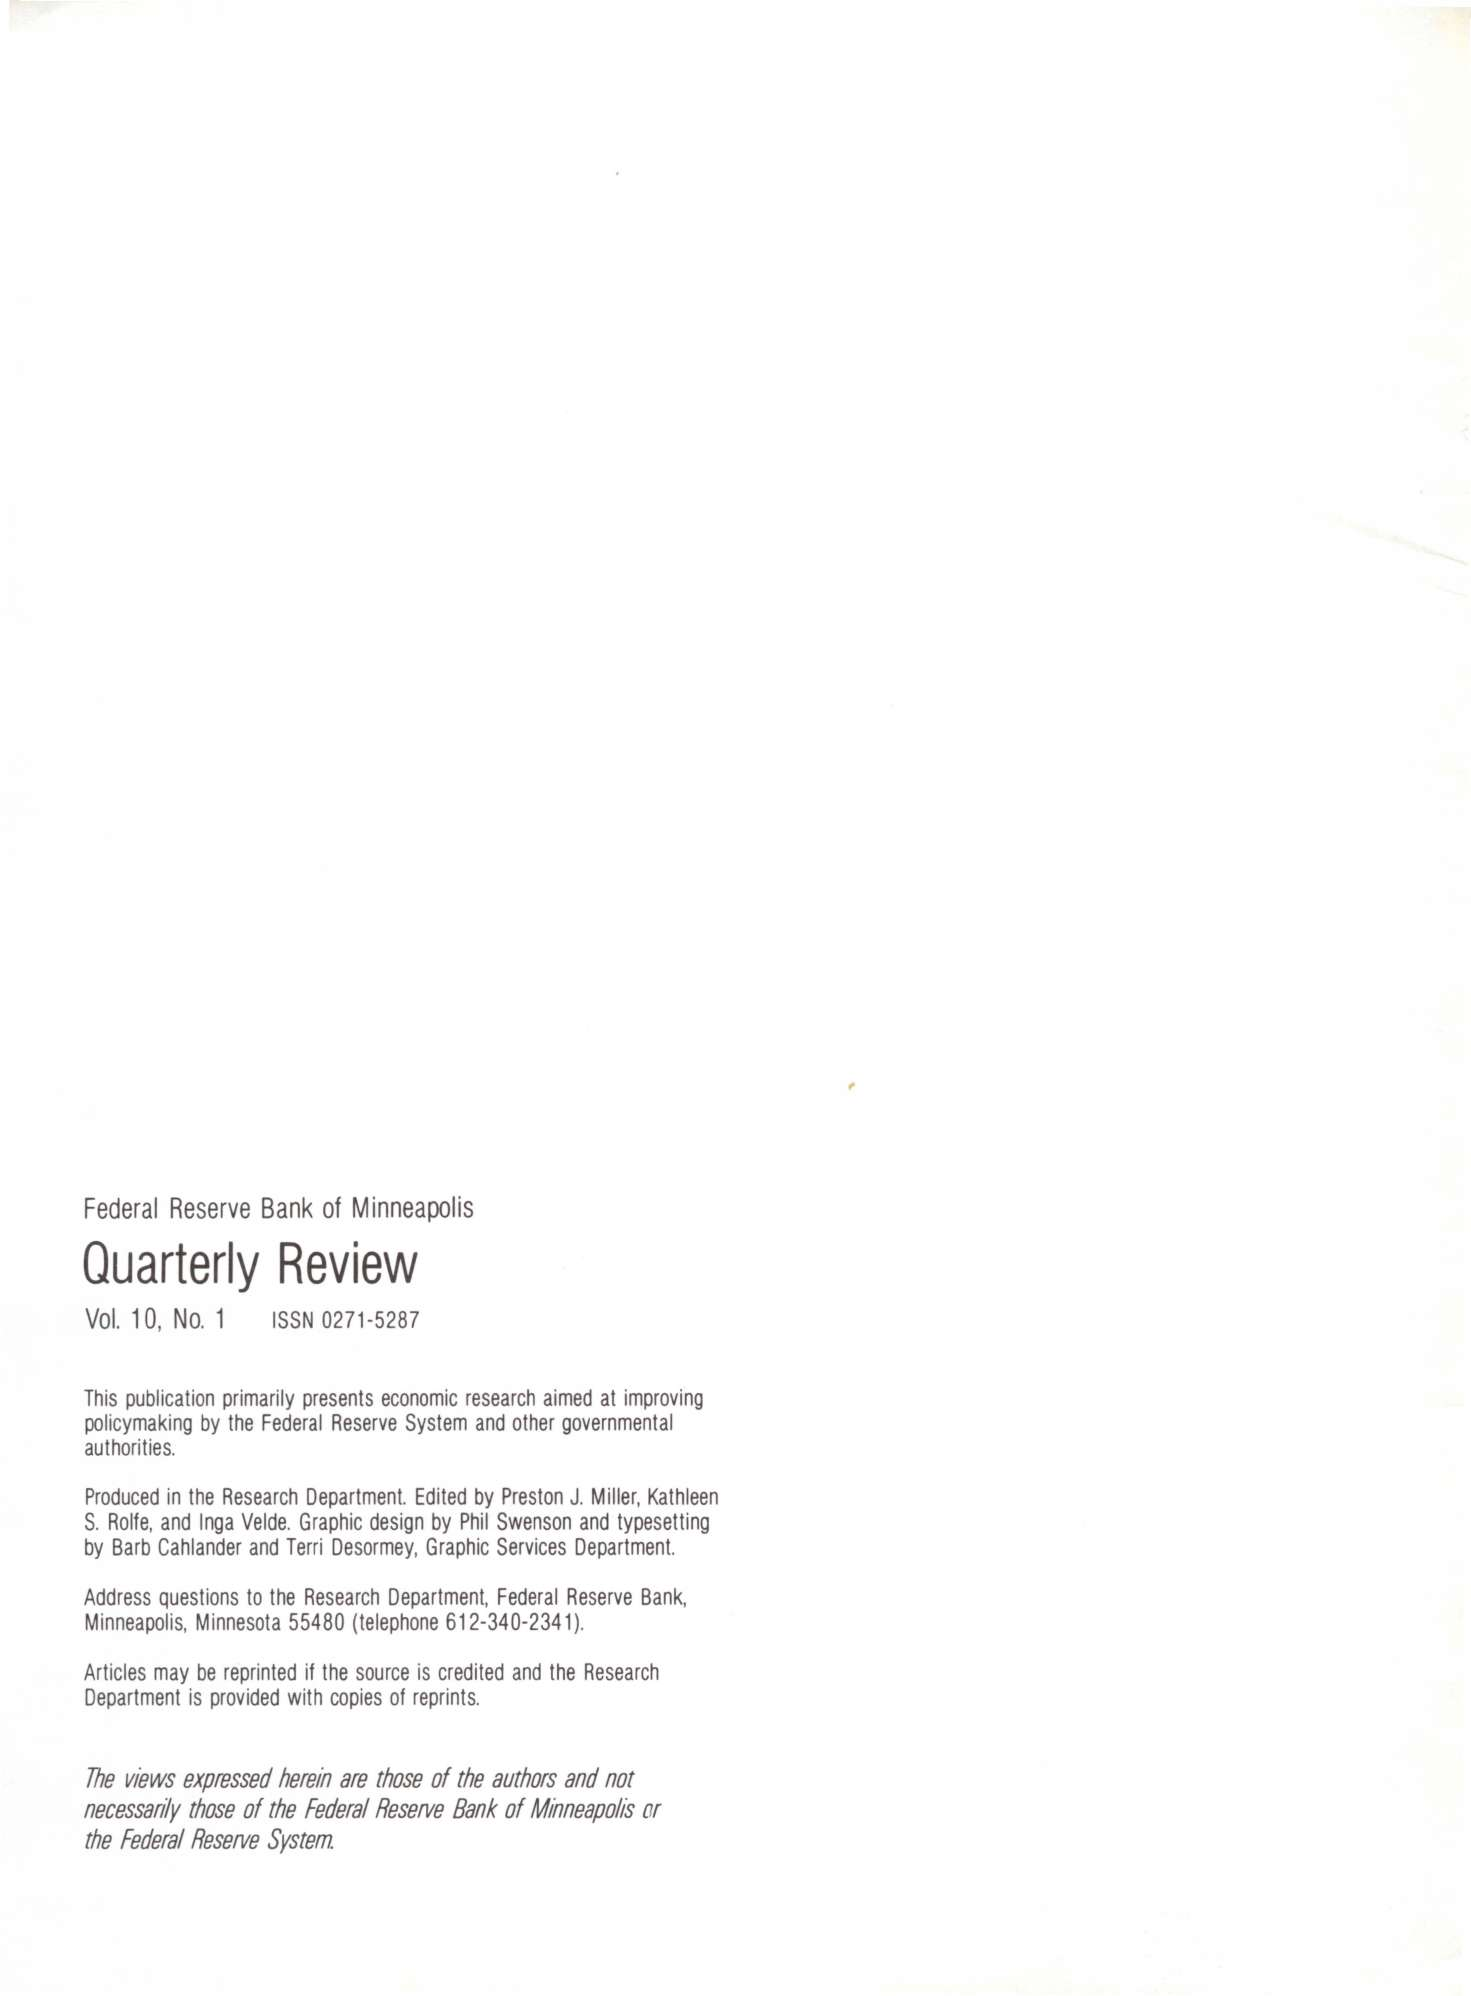 Federal Reserve Bank of Minneapolis Quarterly Review Vol. 10, No.